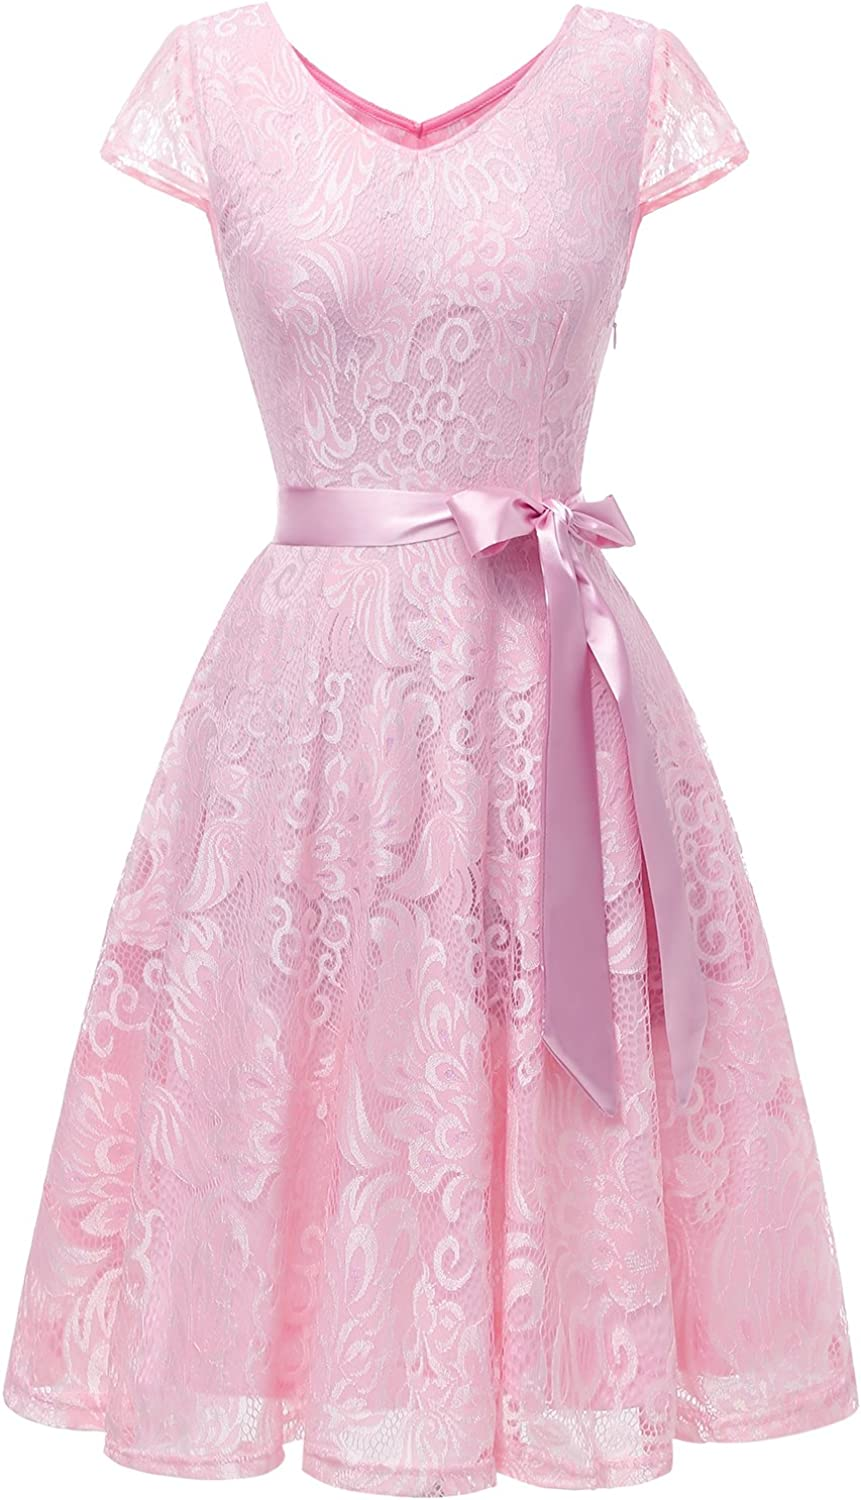 Bridesmay Women's Short Bridesmaid Dresses Floral Lace Dress with Cap Sleeve